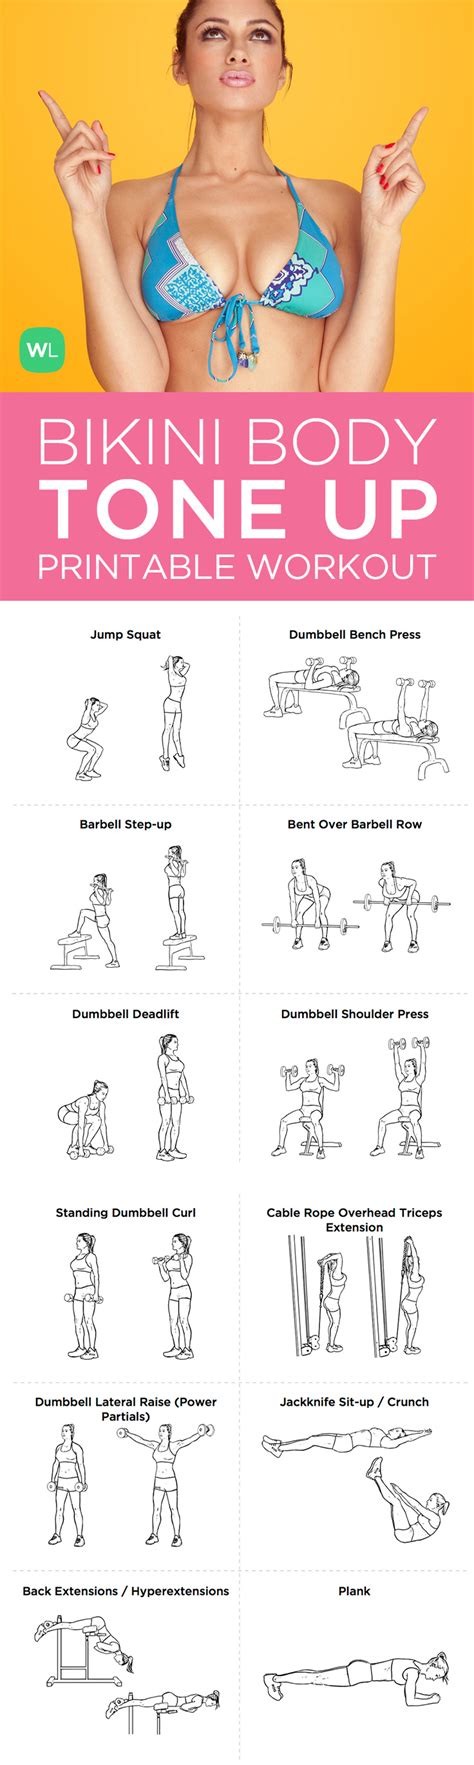 tone up printable workout plan for